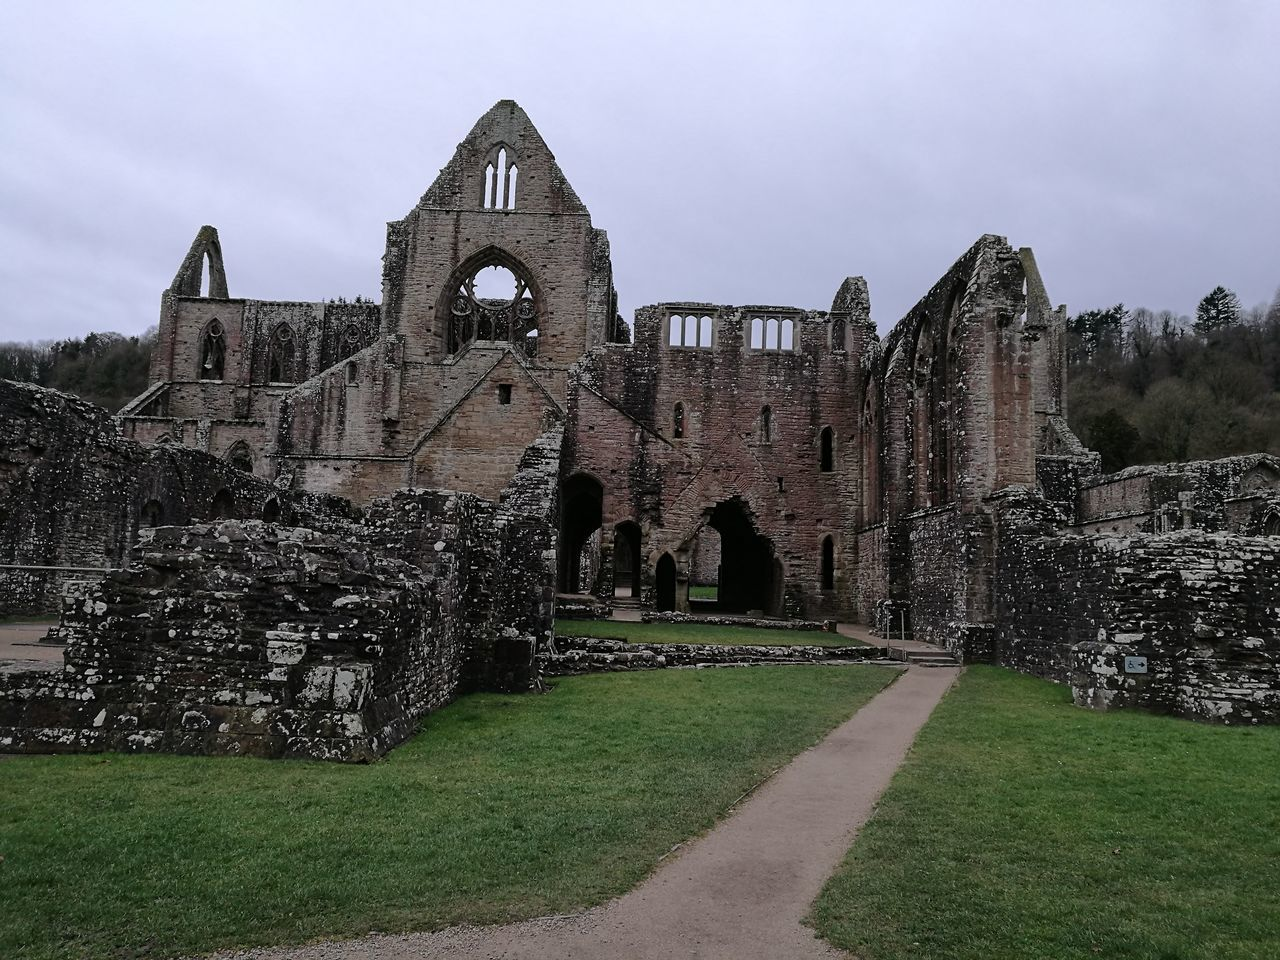 Building Exterior History Built Structure Gothic Style Architecture Tinternabbey Architectural Column Old Ruin Decay And Dereliction Arch Abbey Ancient Civilization Beauty Of Decay Ancient